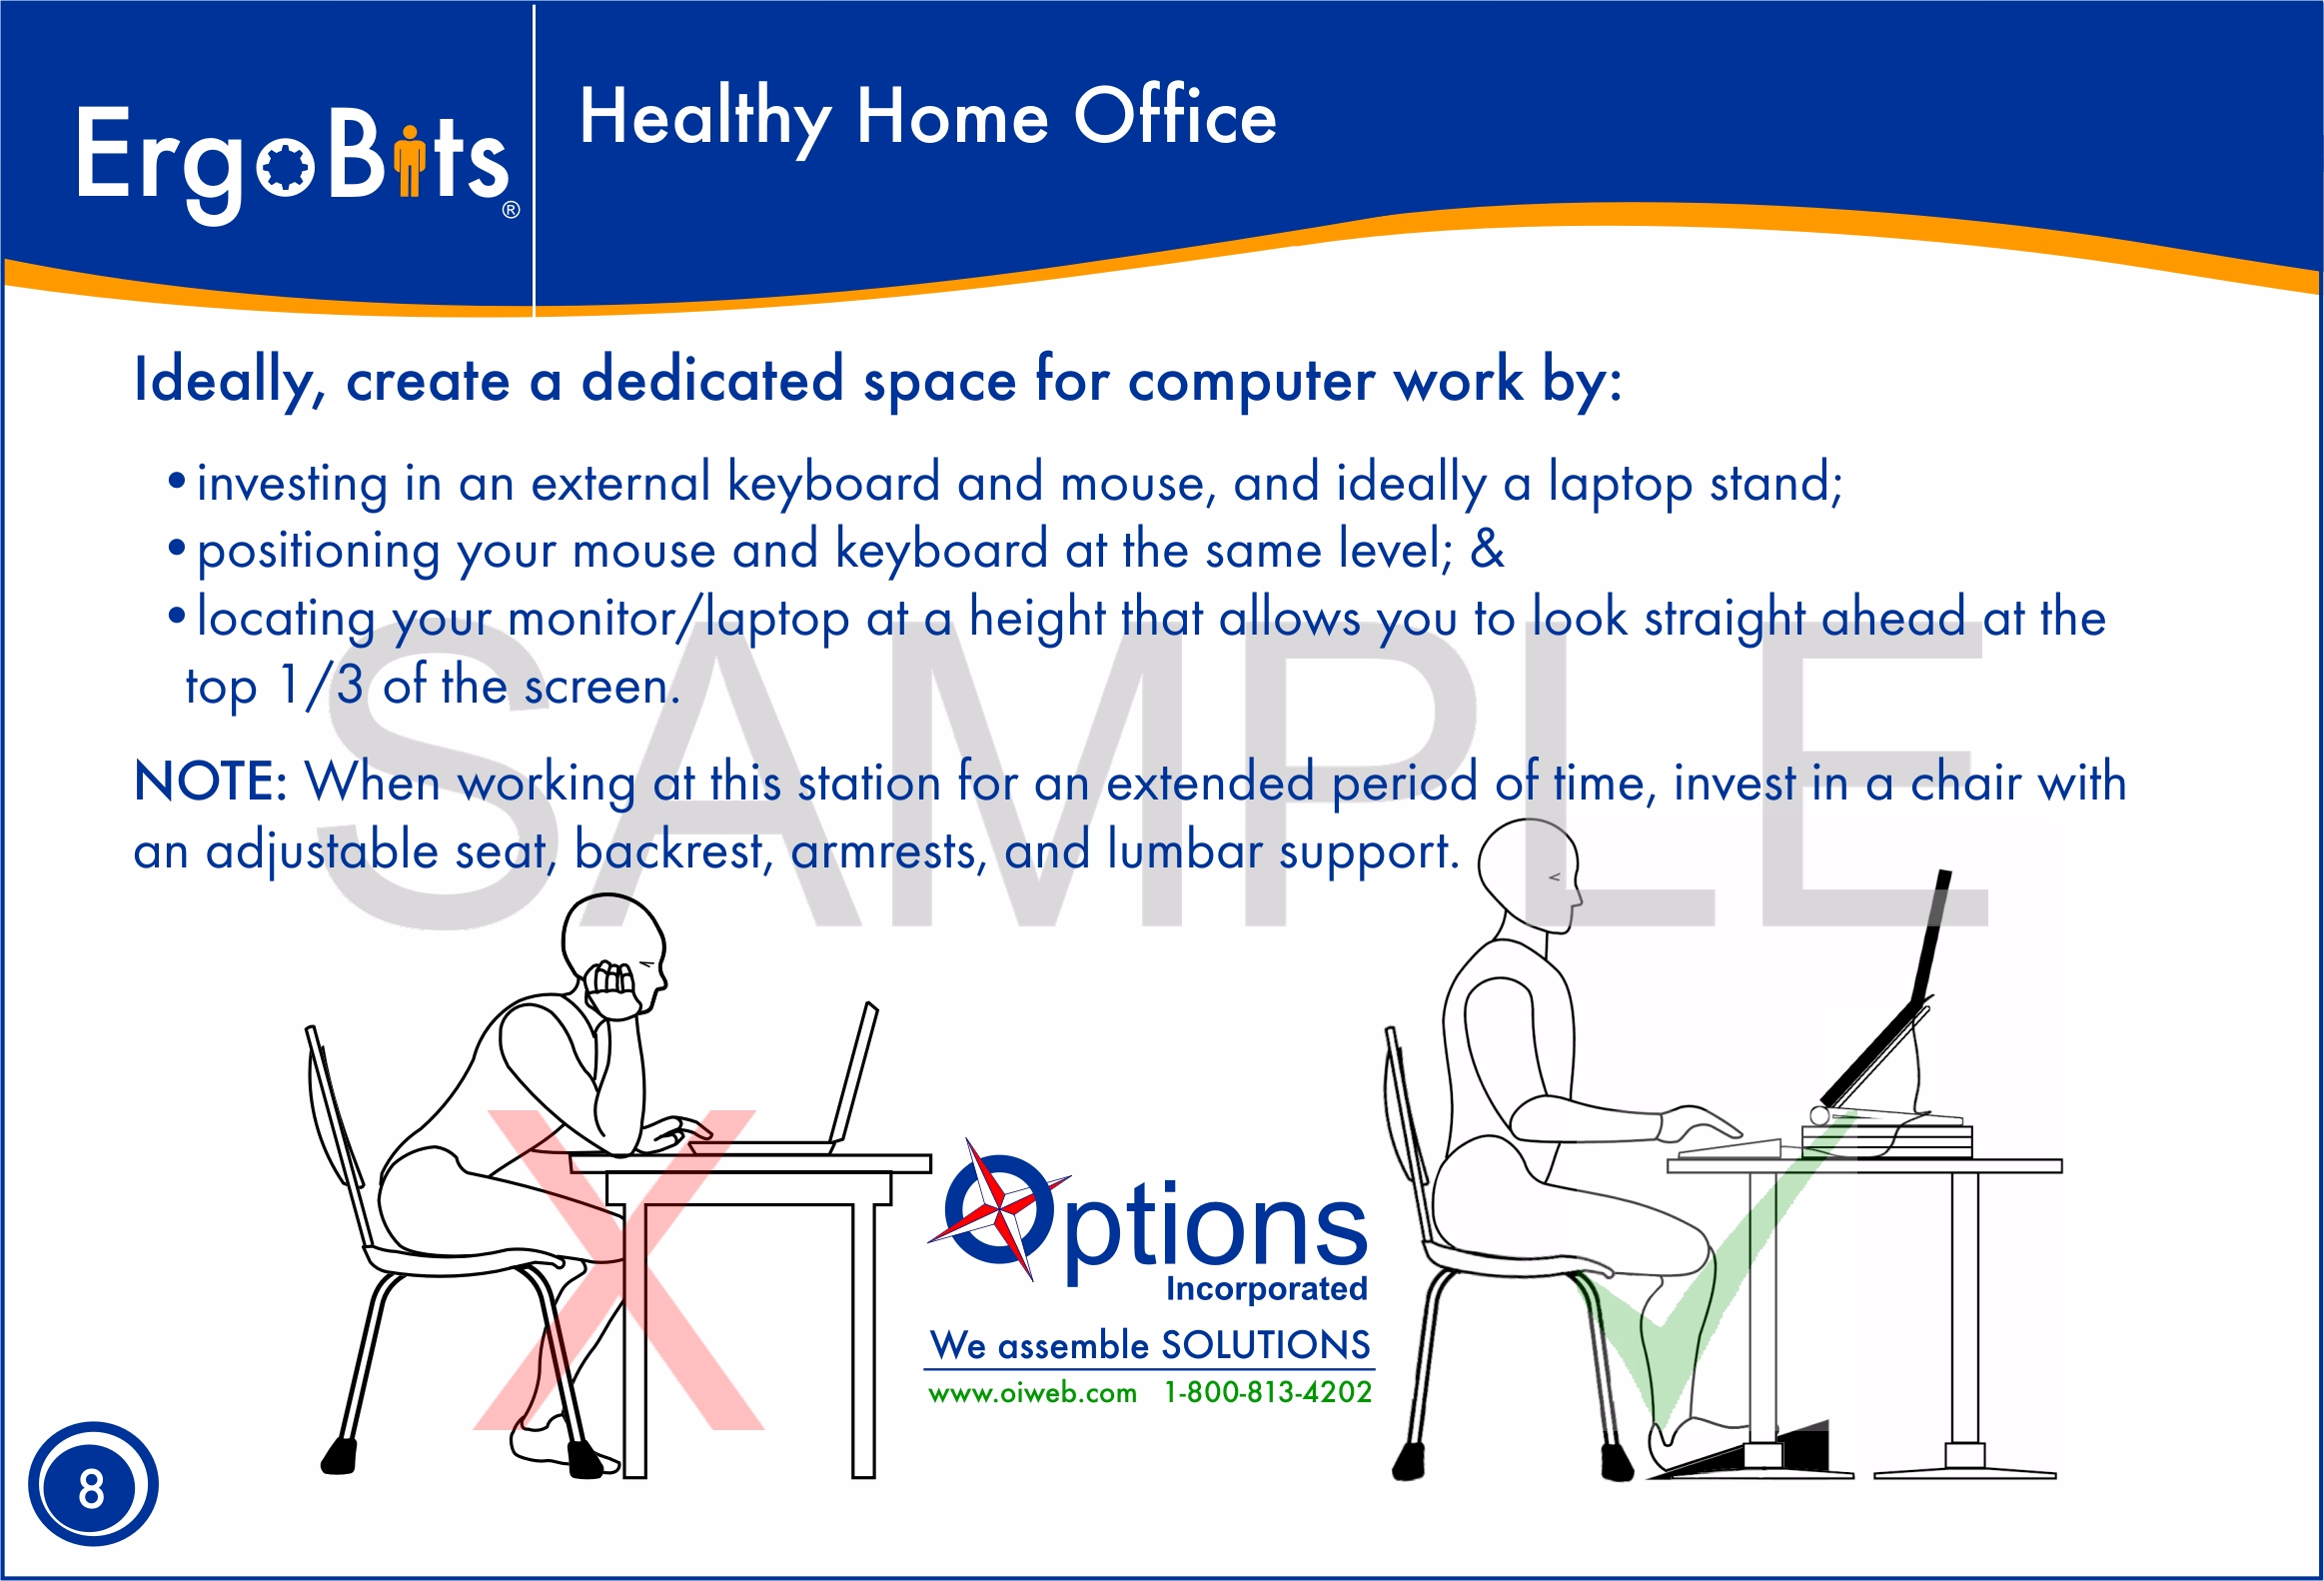 Sample Healthy Home Office Postcard